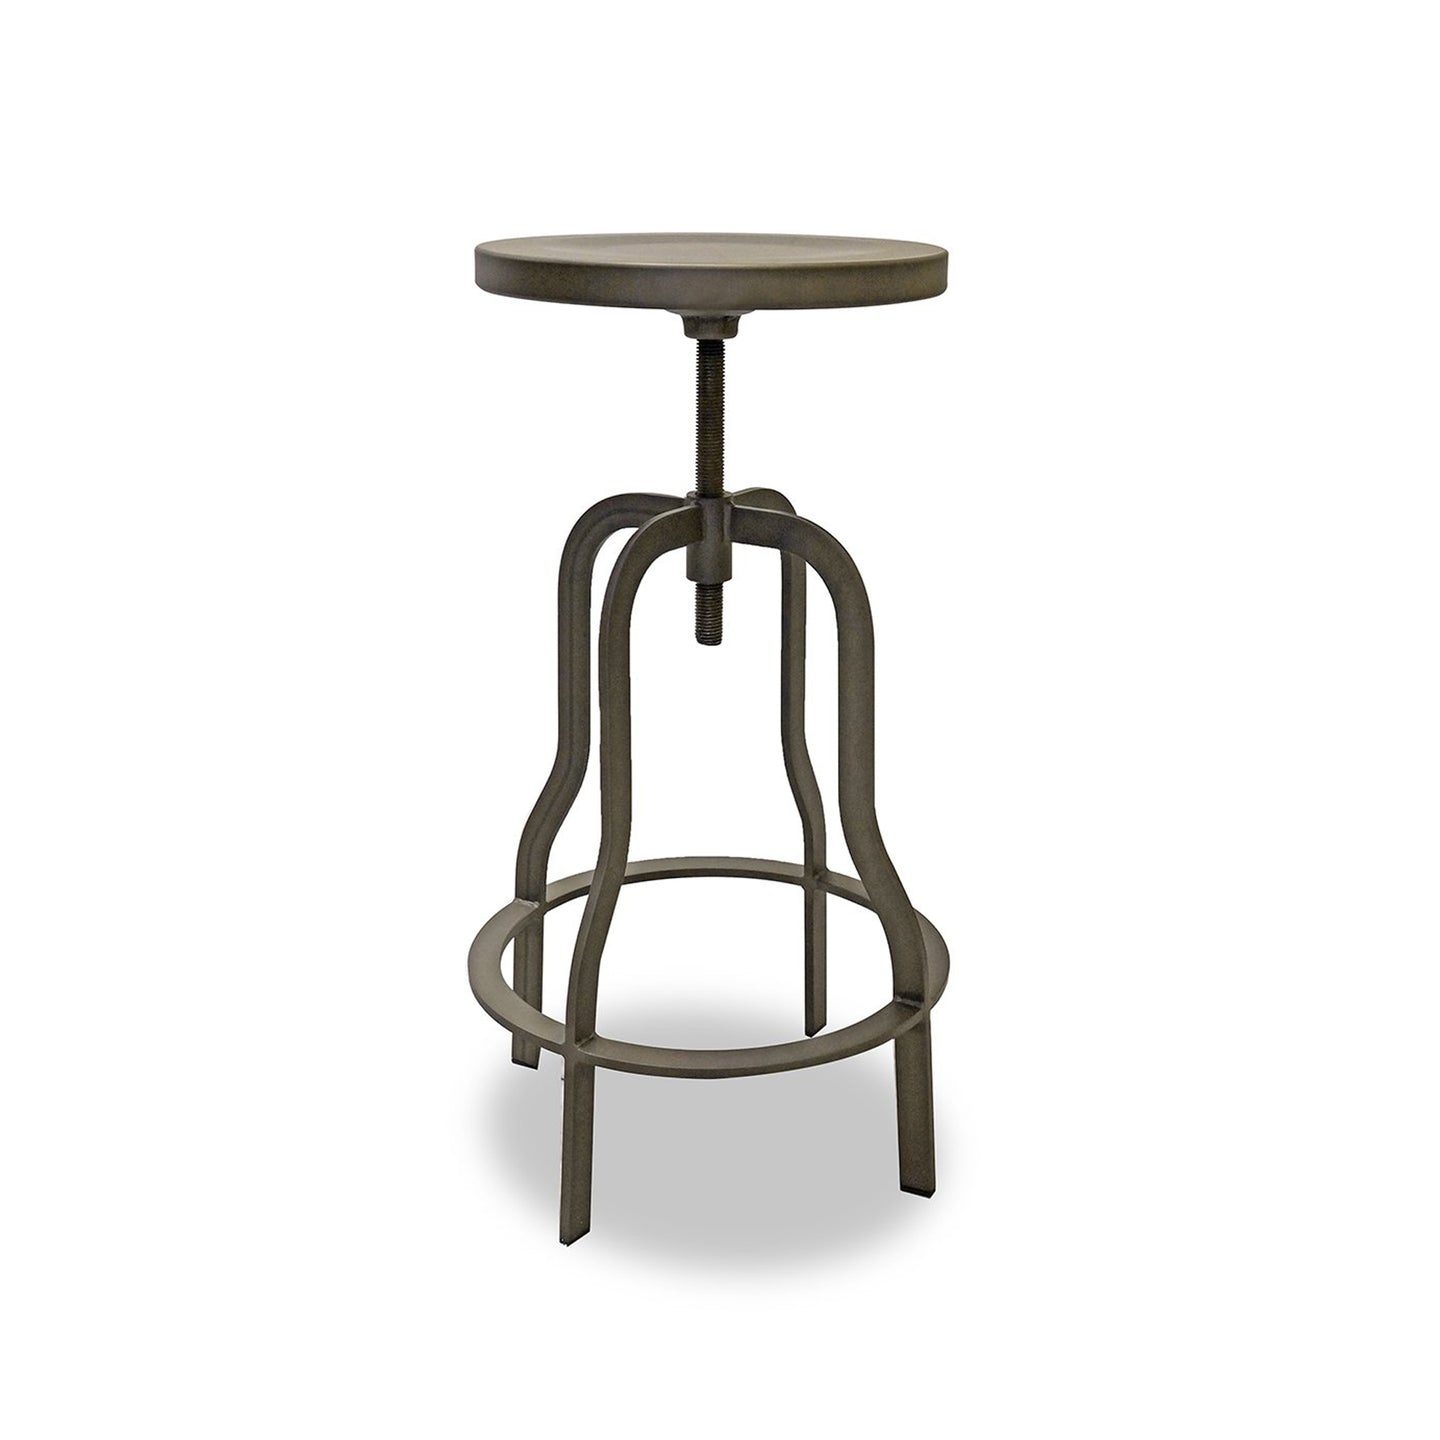 SPIDER ADJUSTABLE STOOL